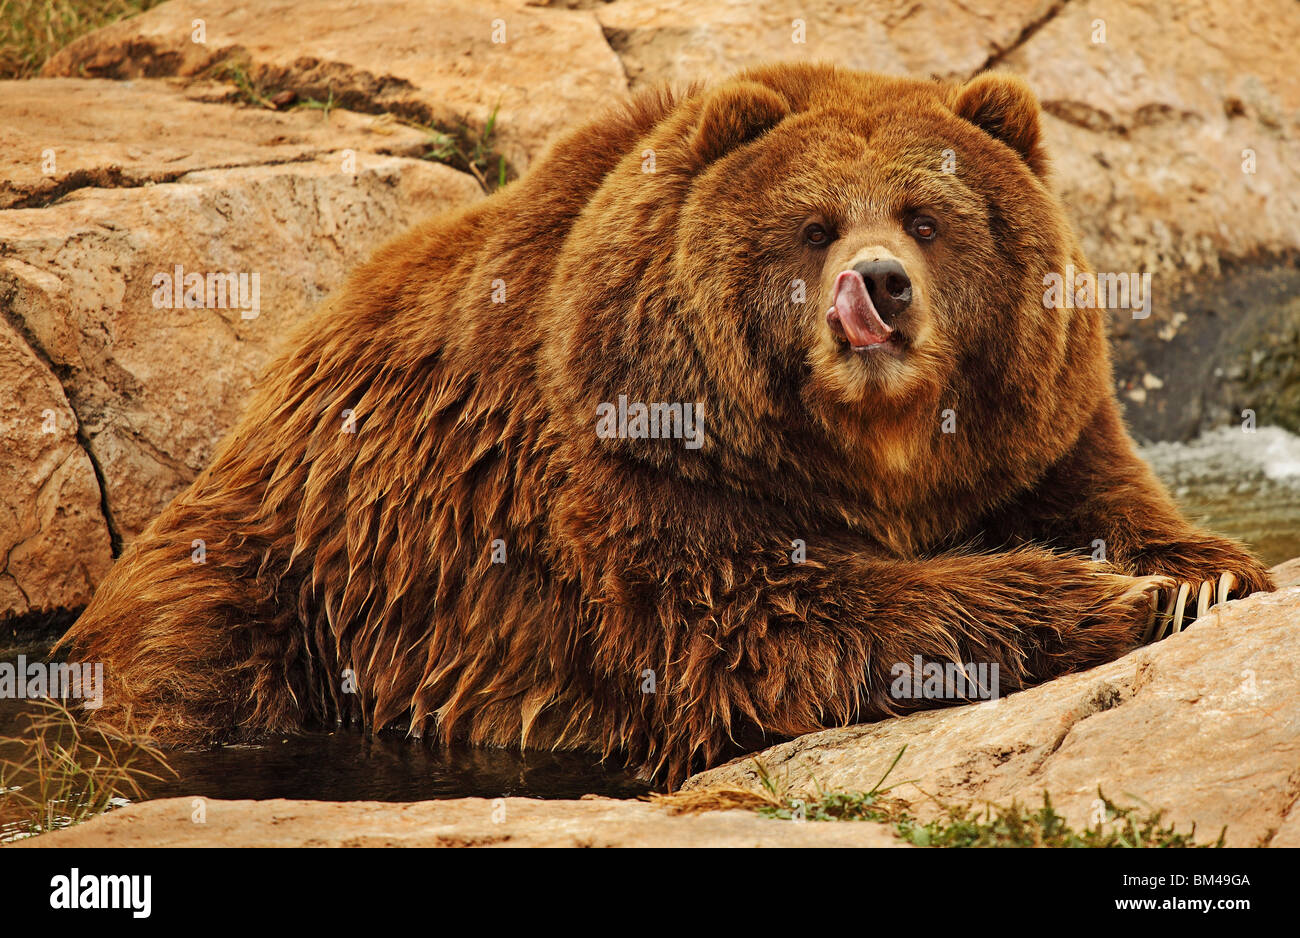 bear licking nose stock photo royalty free image 29598810 alamy. Black Bedroom Furniture Sets. Home Design Ideas